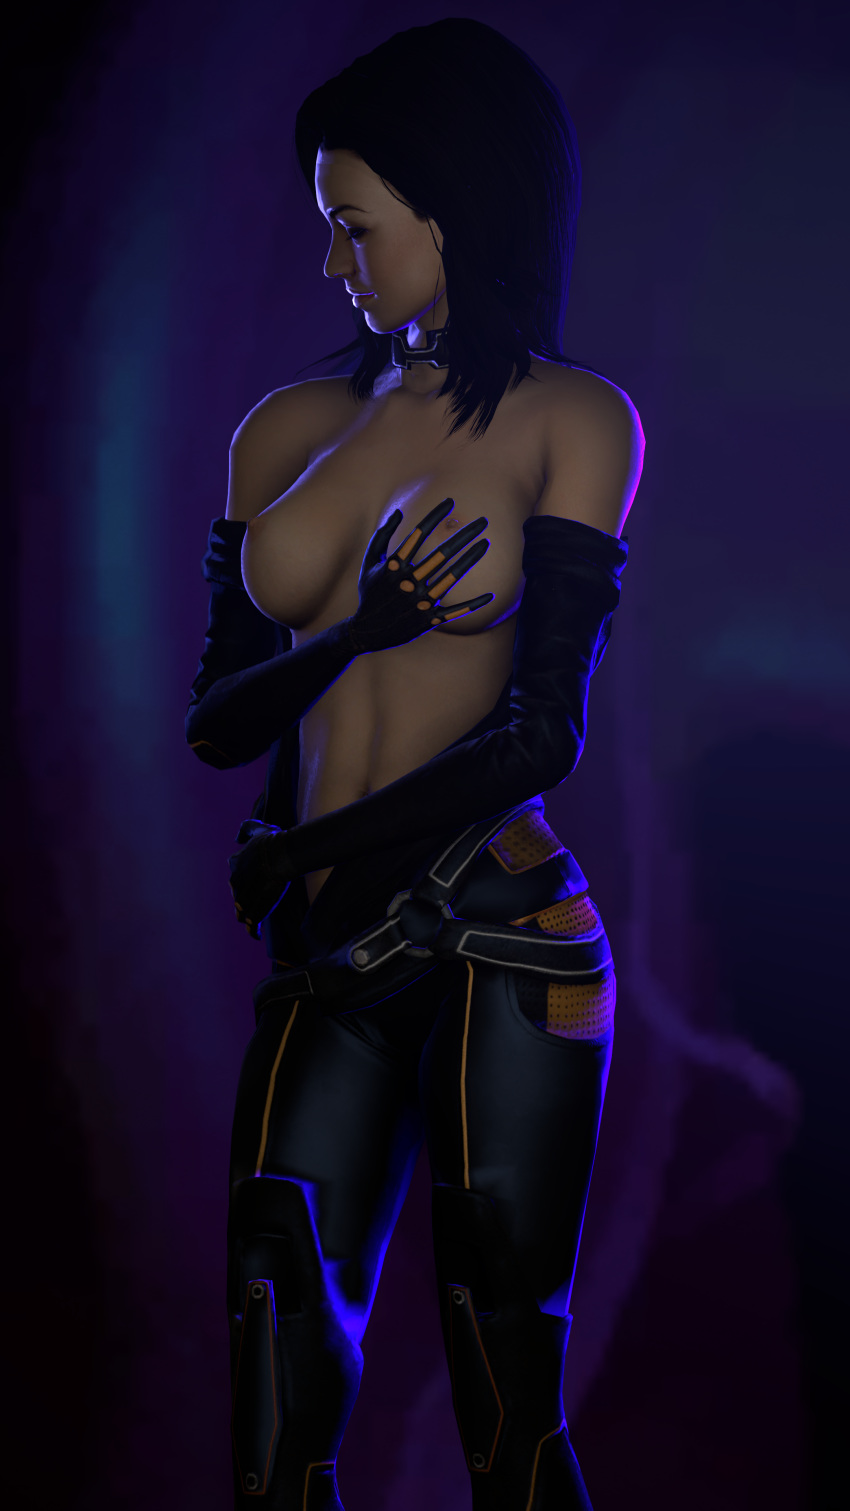 1girls 3d areolae black_clothing black_hair breast_grab breasts closed_eyes female female_only grabbing_own_breast hips itwasmedio jumpsuit looking_away looking_down mass_effect miranda_lawson navel nipples open_clothes open_shirt solo source_filmmaker